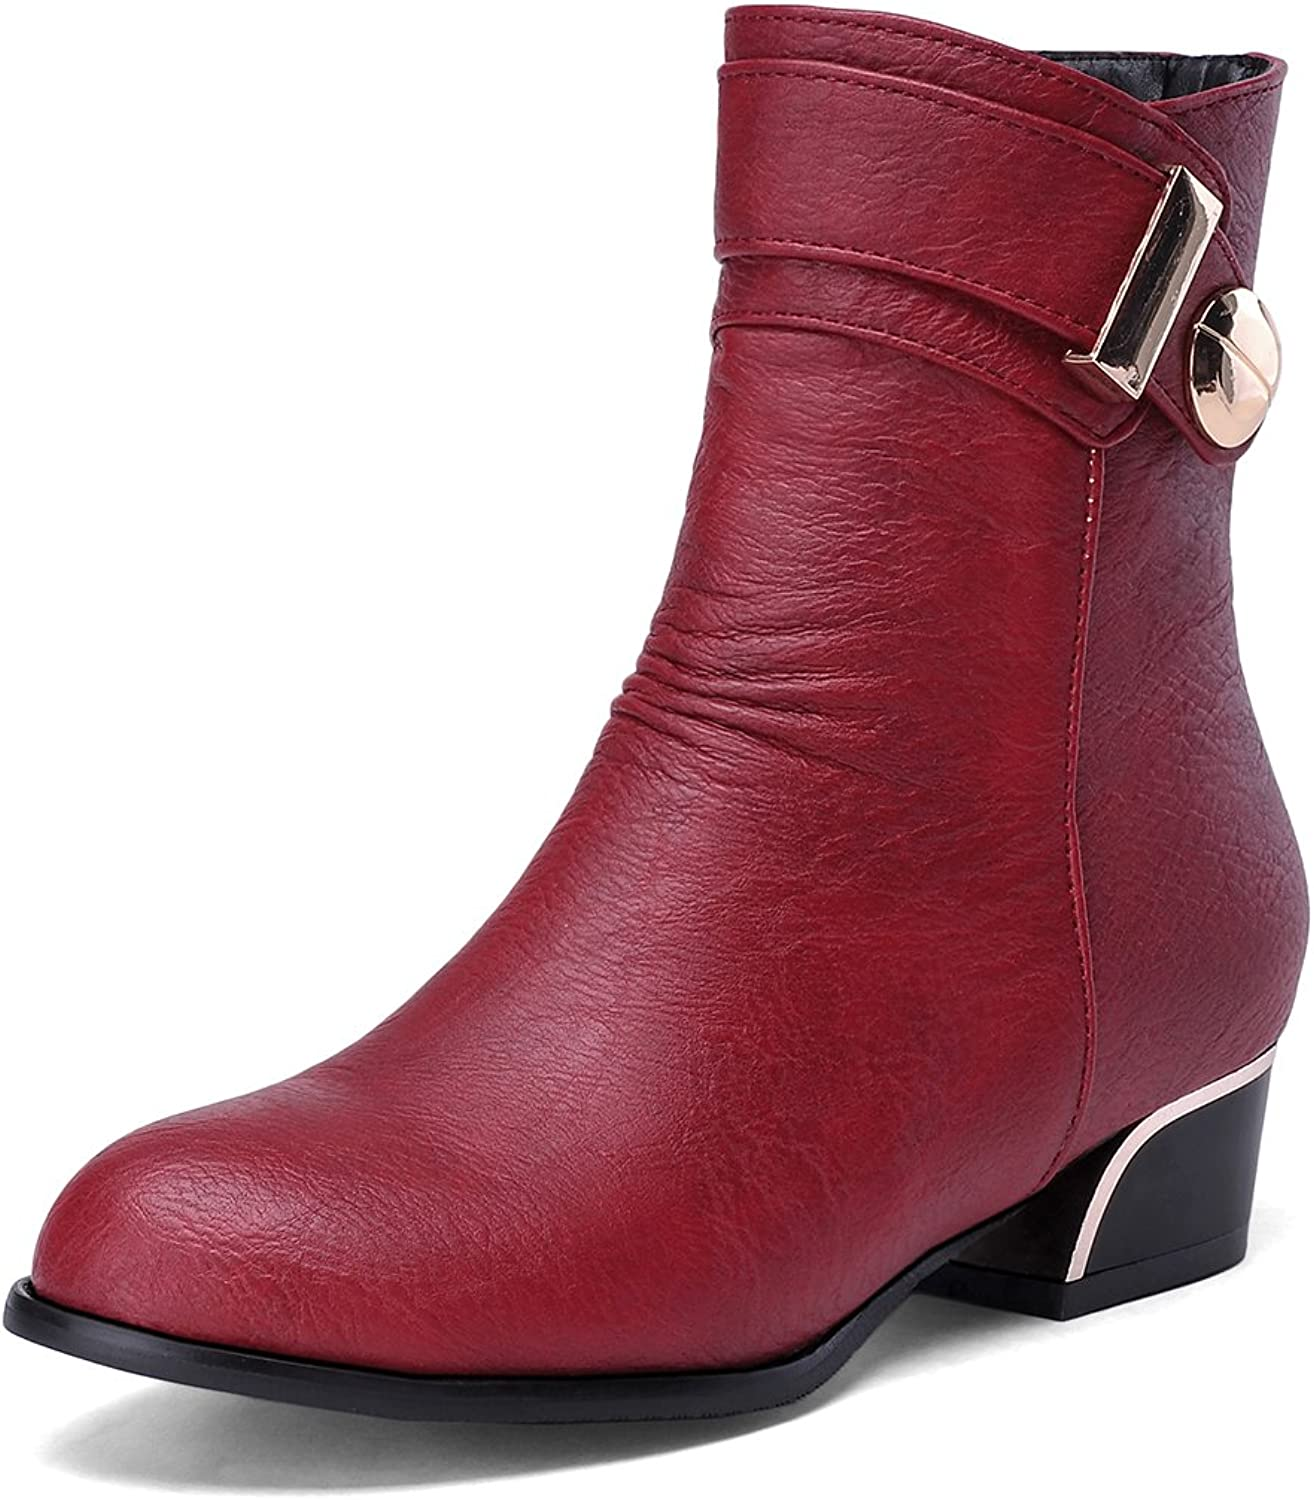 AIWEIYi Womens Round Toe Buckles Low Heel Platform Ankle Boots Black